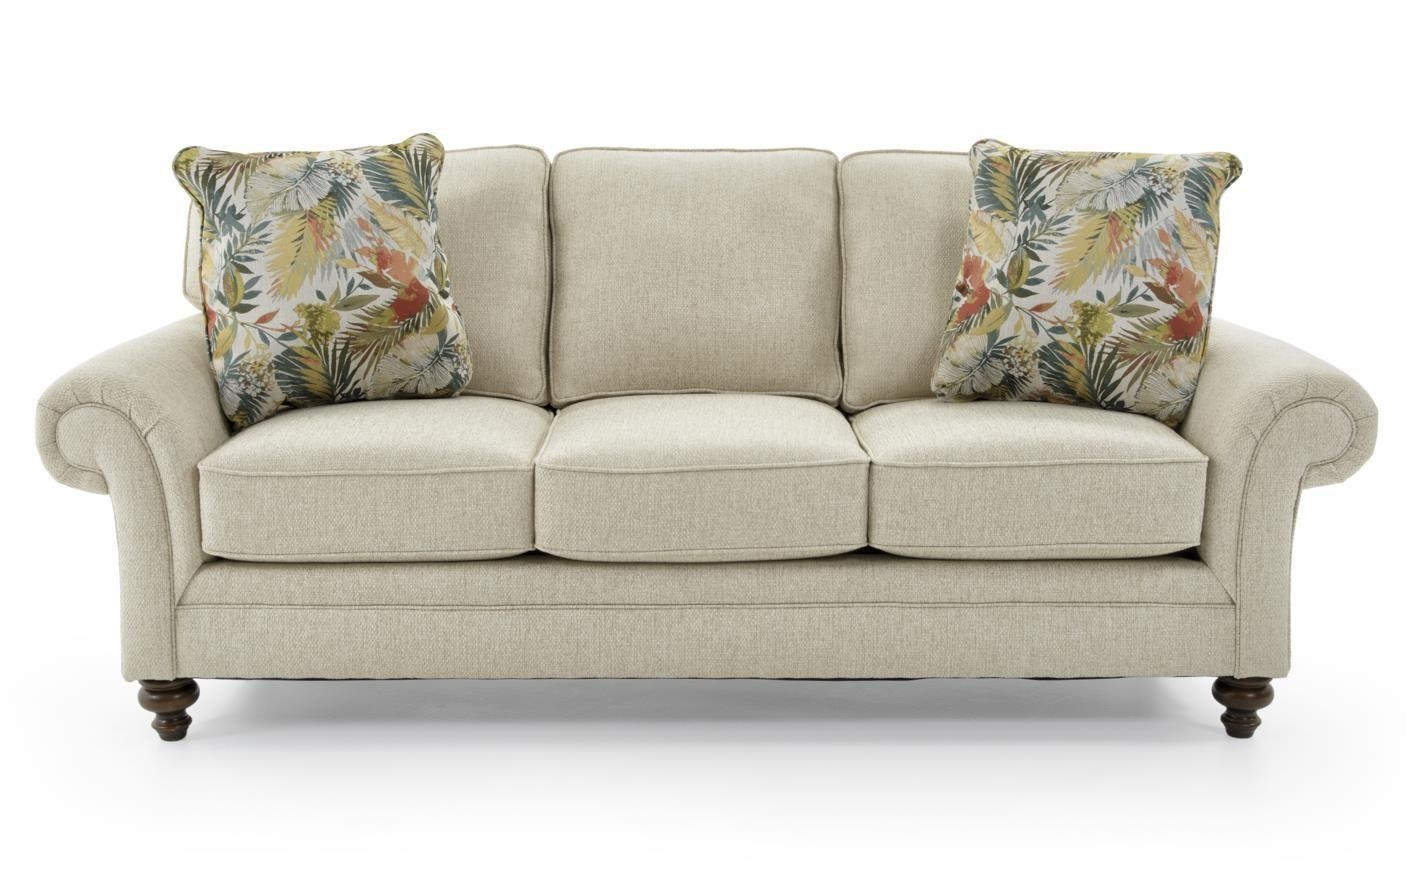 Broyhill Furniture Larissa Upholstered Stationary Sofa With Rolled In Broyhill Larissa Sofas (View 4 of 20)